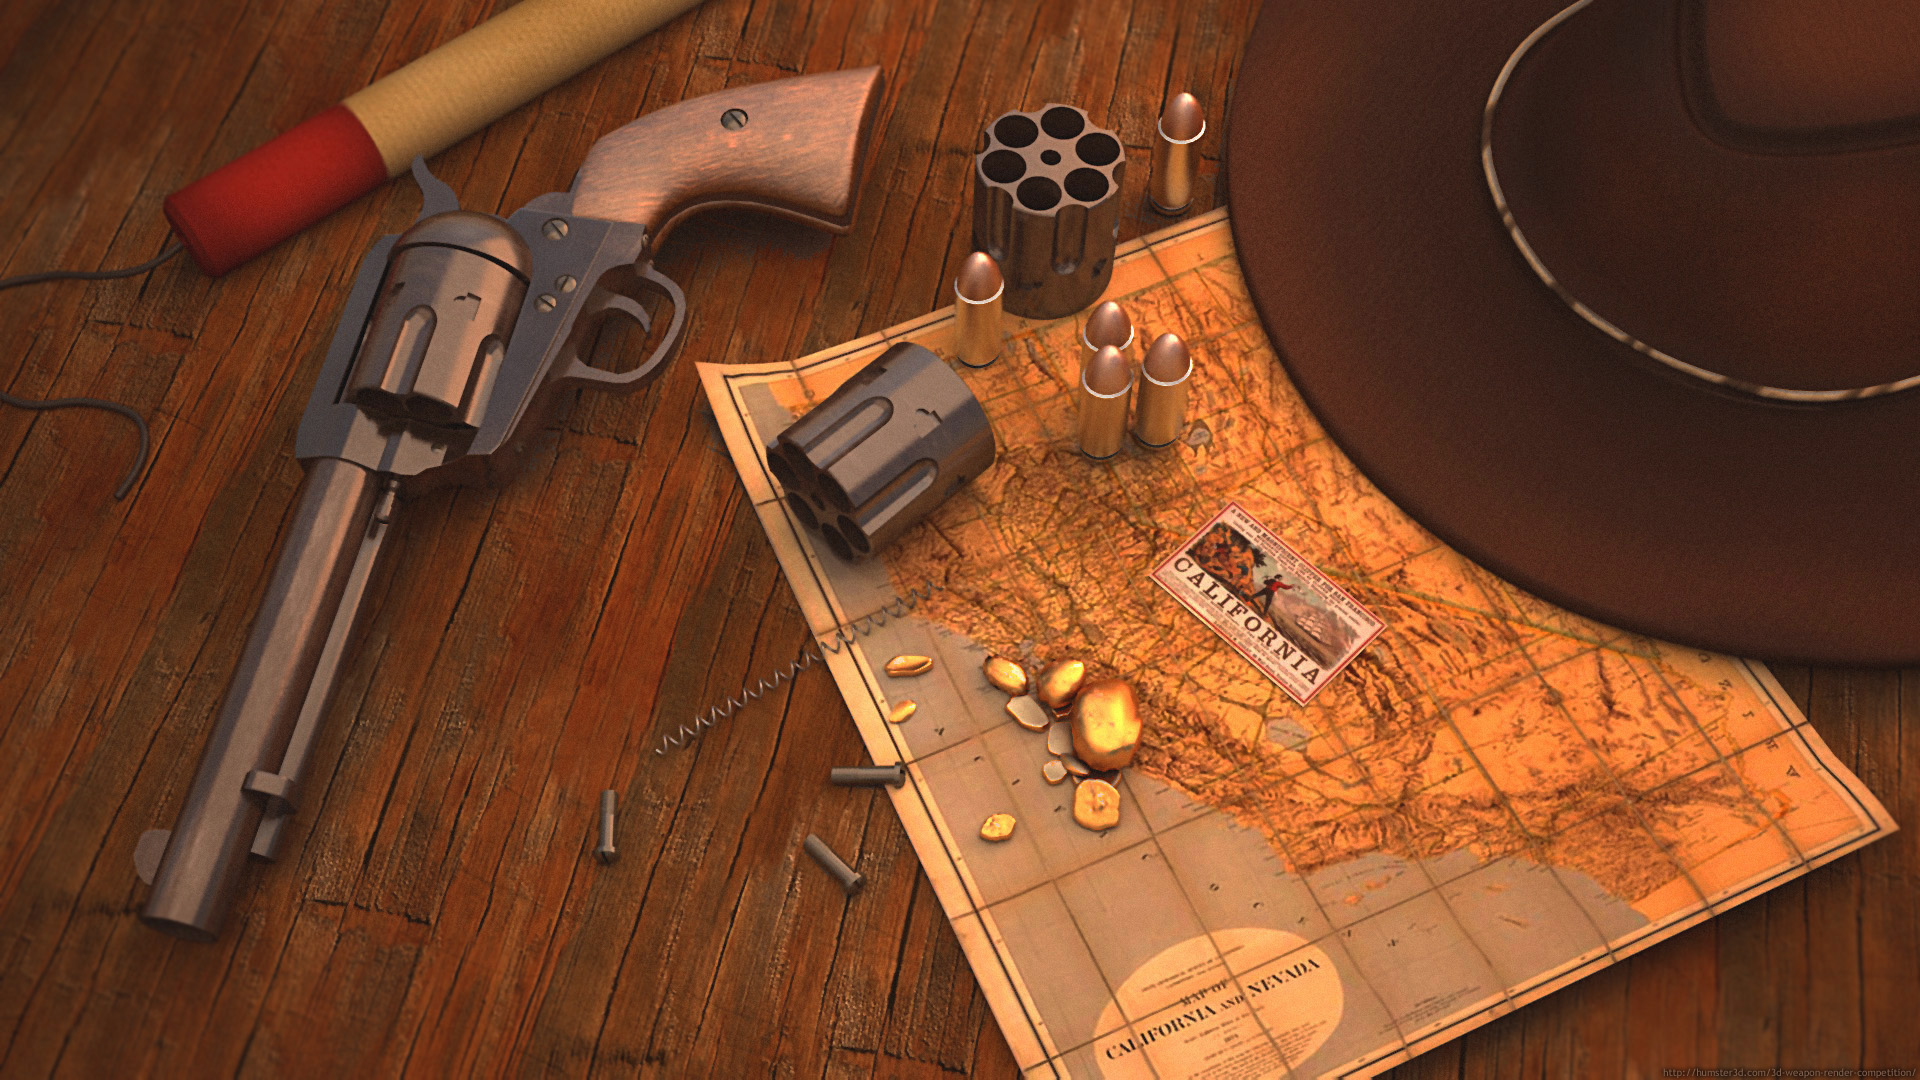 Gold fever with Colt Peacemaker 3d art